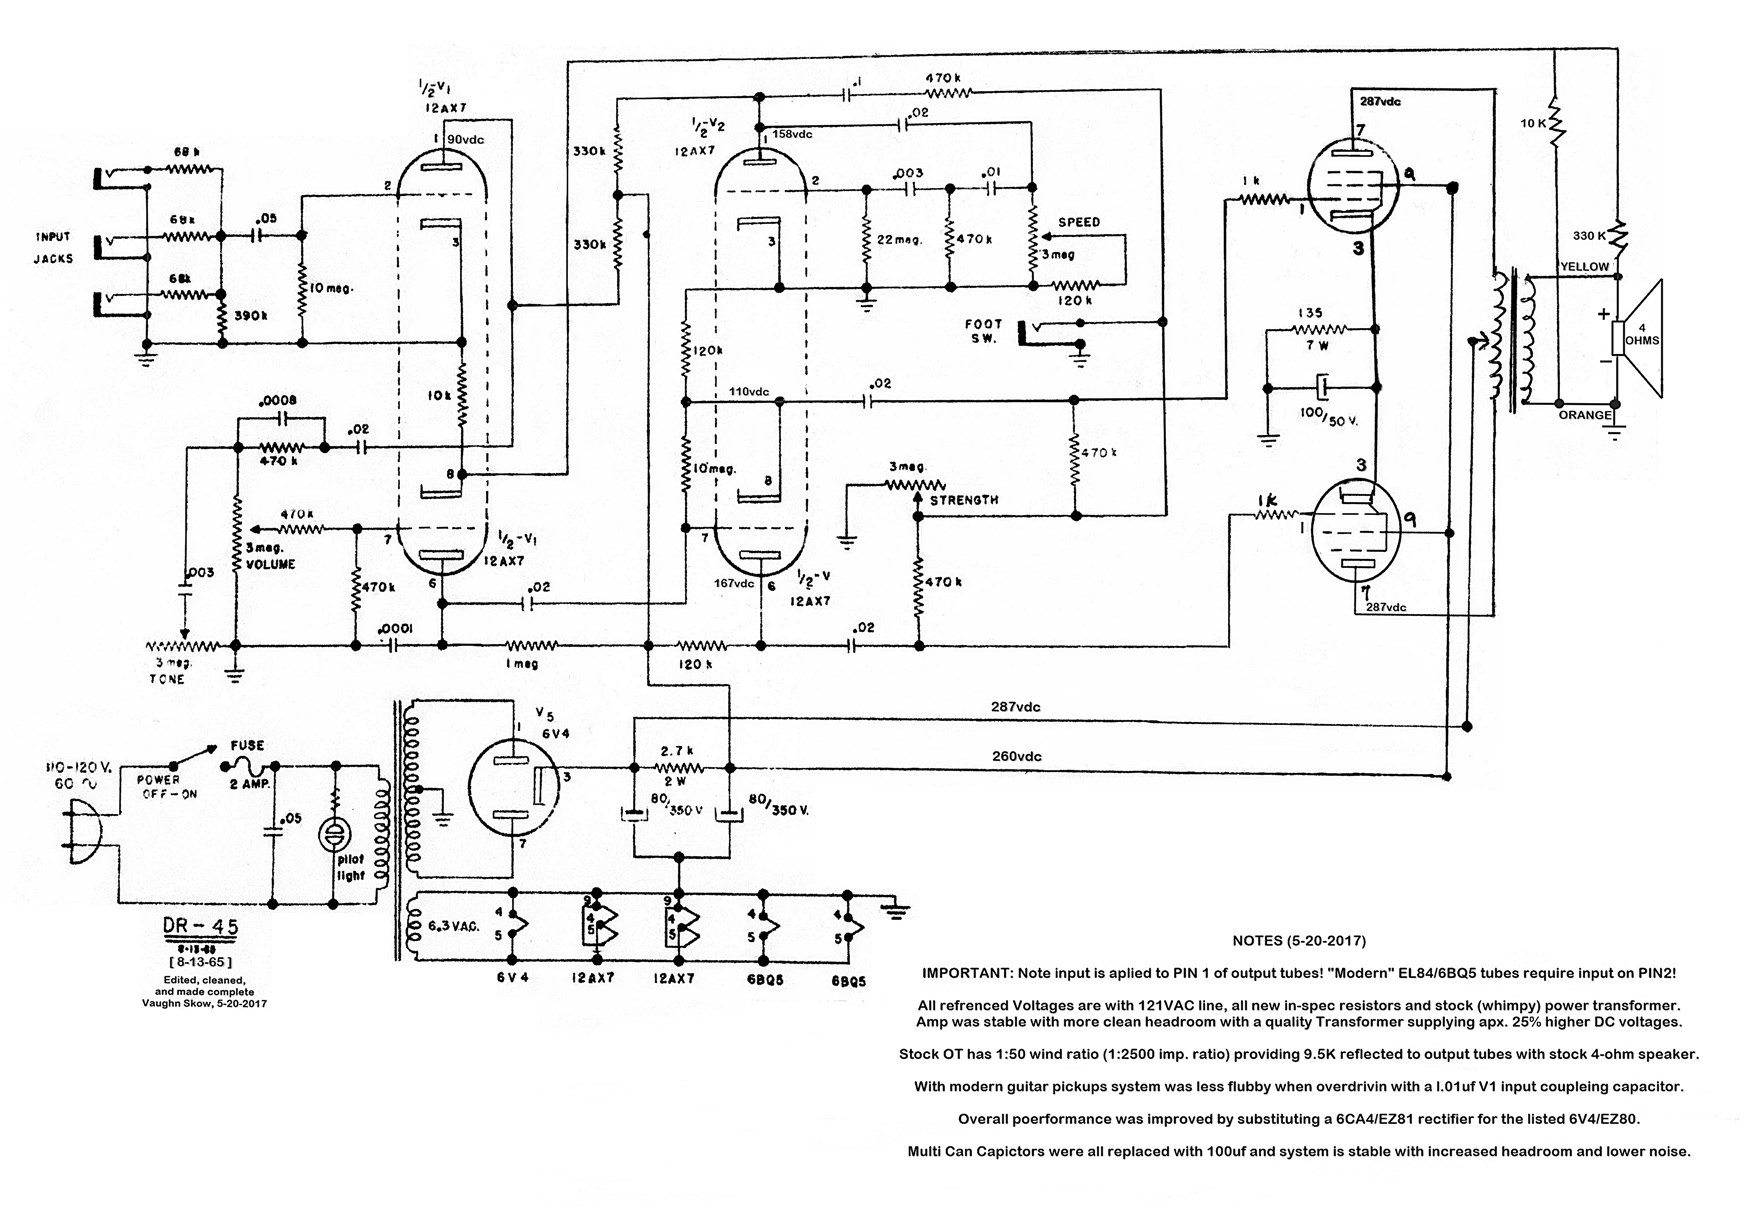 Vintage tube amplifier schematic